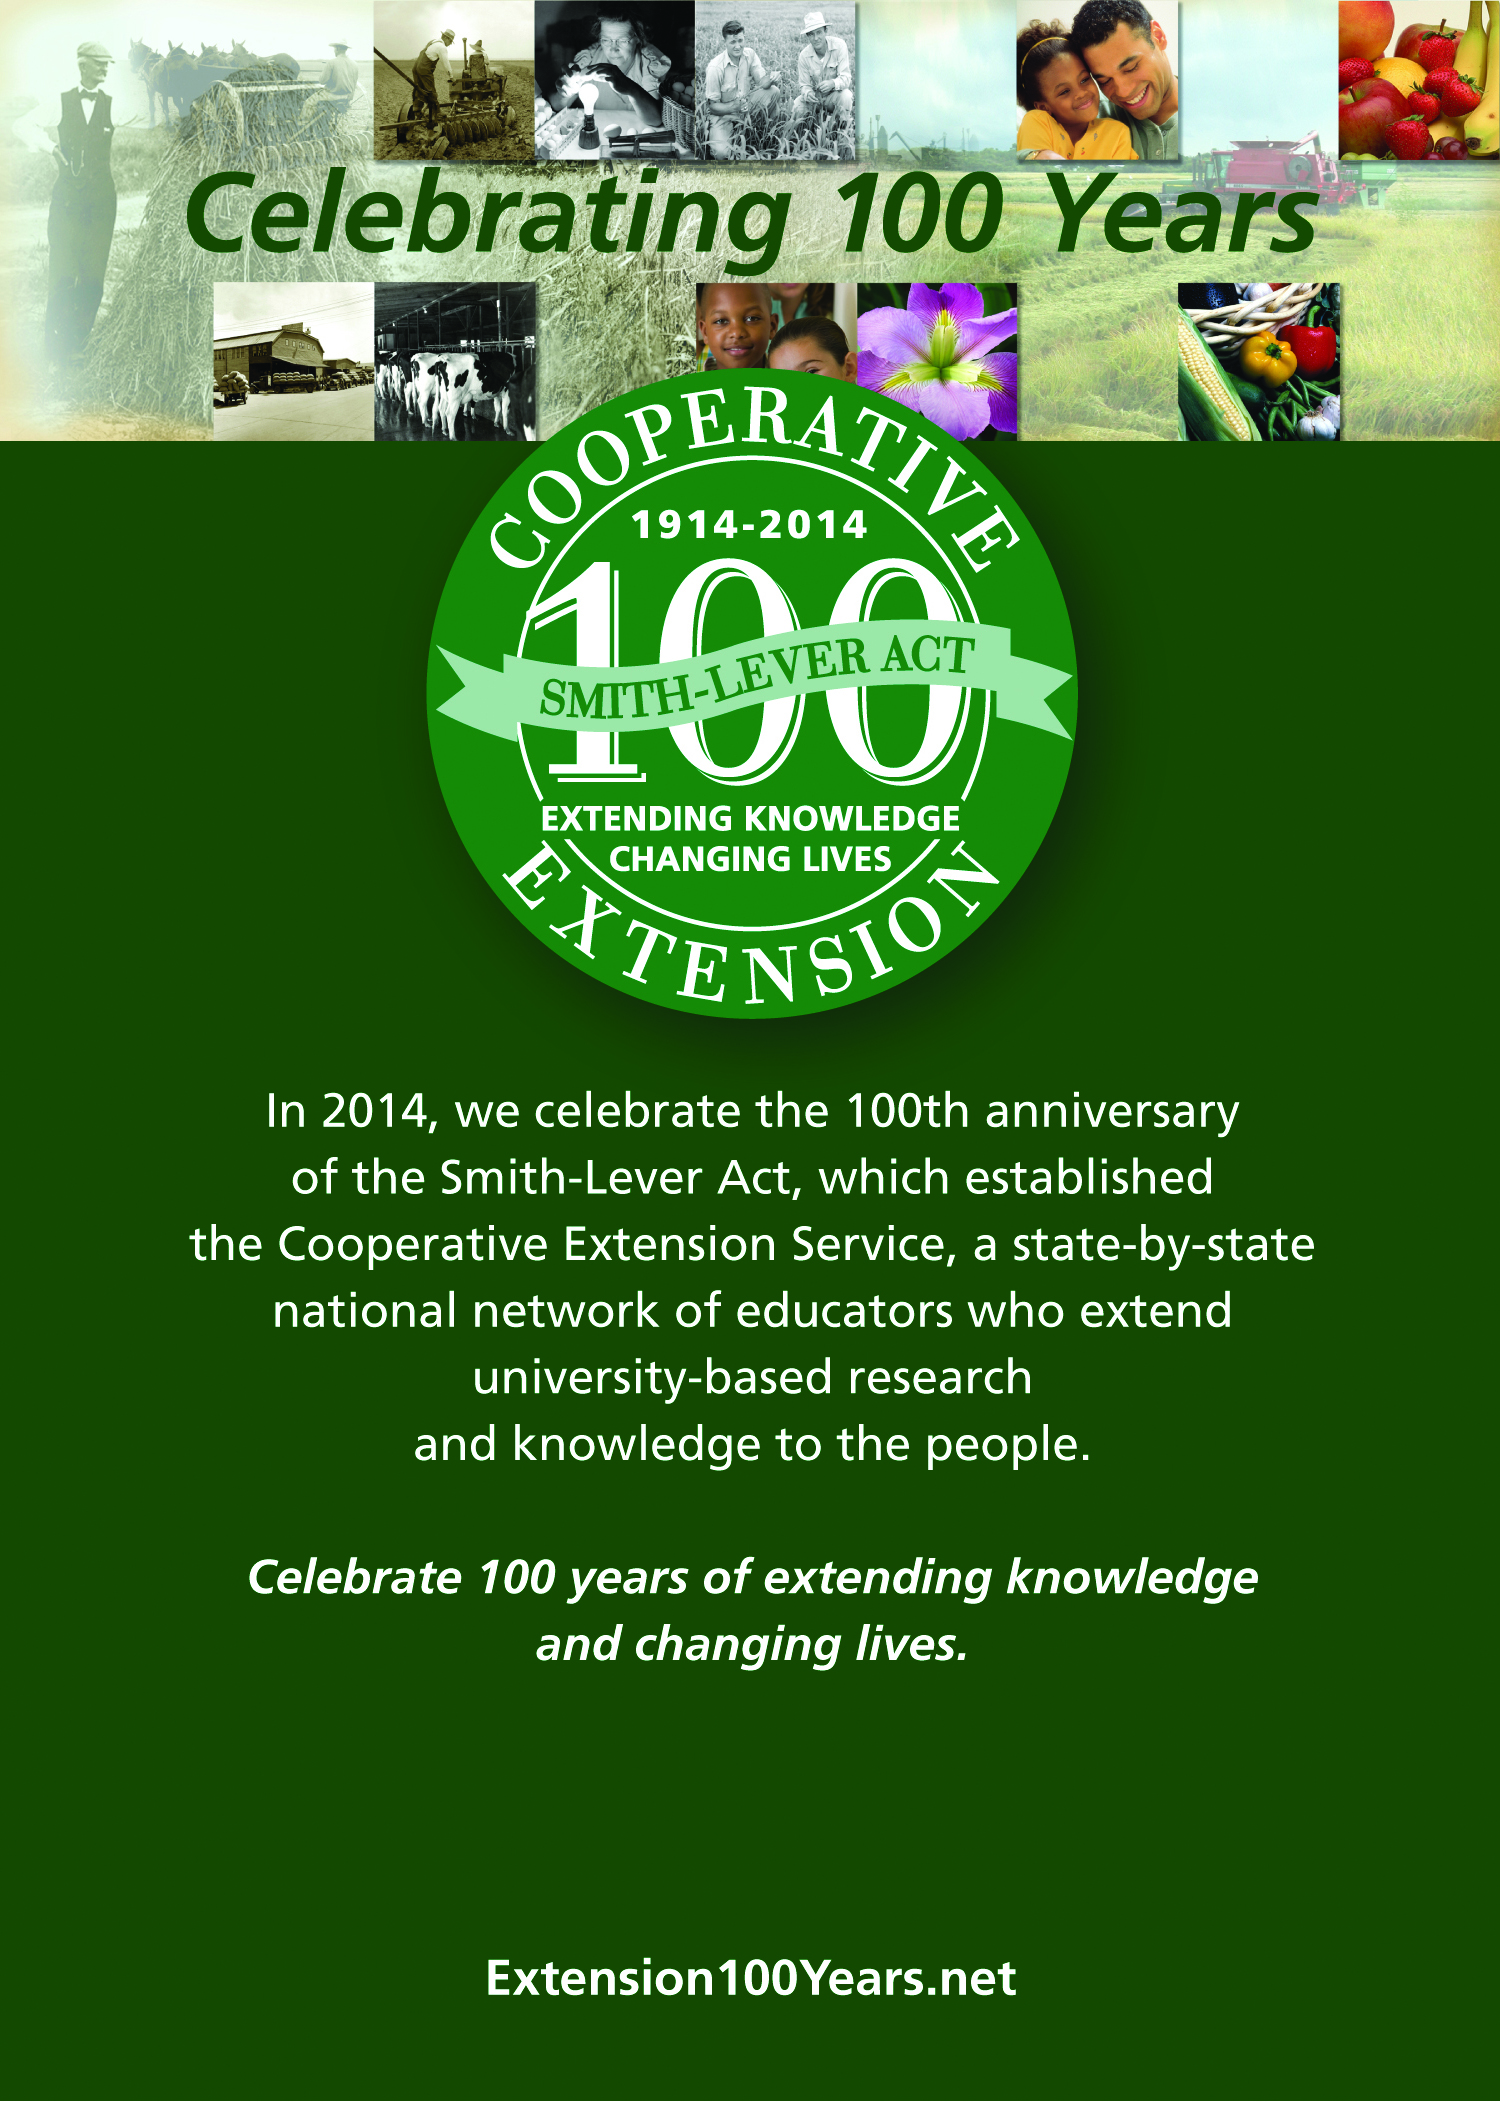 Smith-Lever Extension Centennial Celebration Toolkit